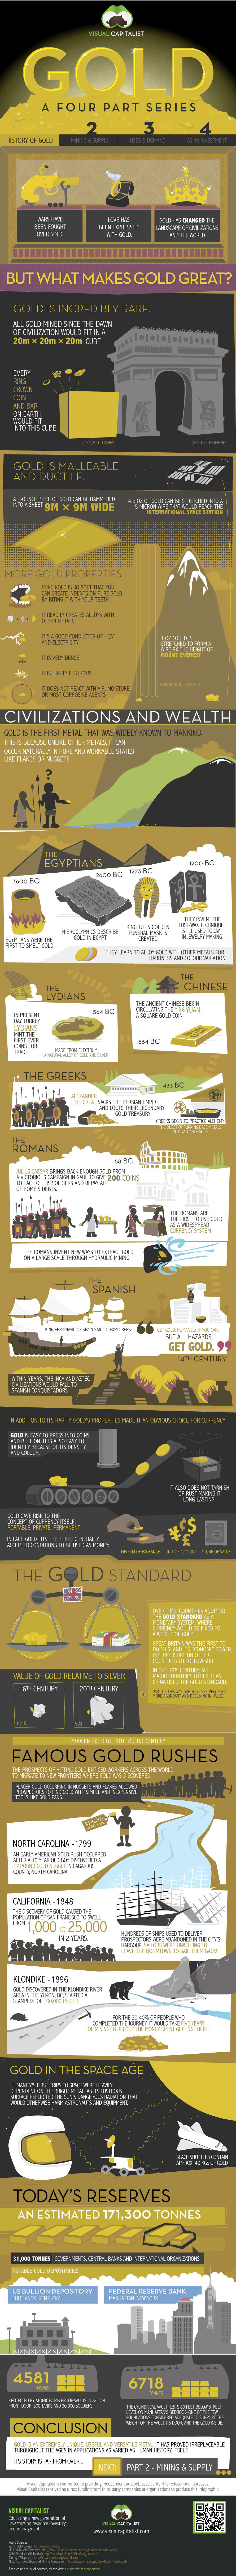 History of Gold-Infographic